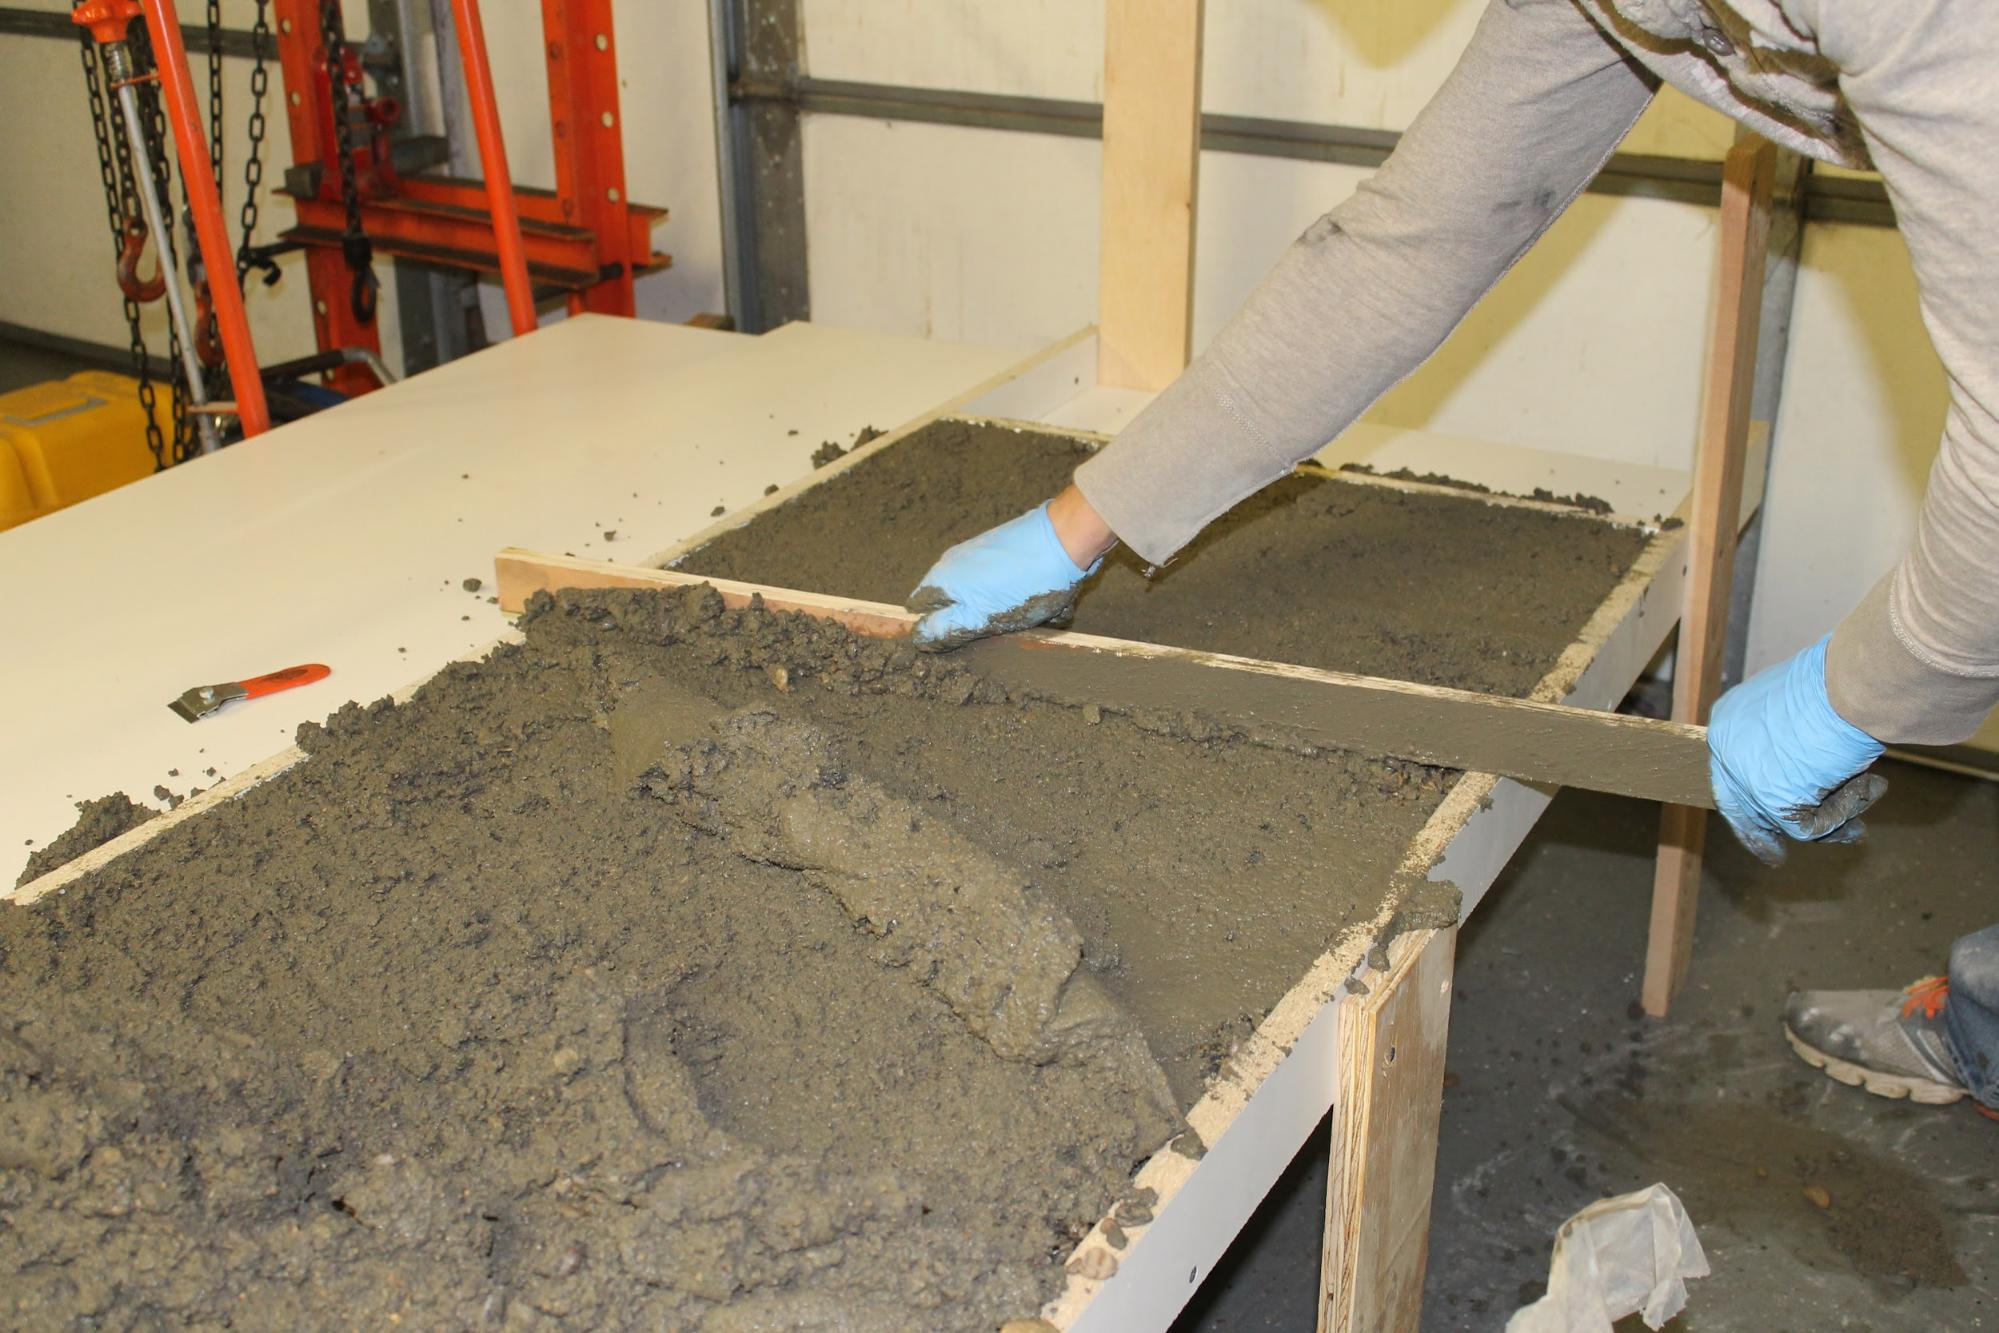 Making Your Own Concrete Countertop Remodelaholic Diy Concrete Countertops In A Beautiful Master